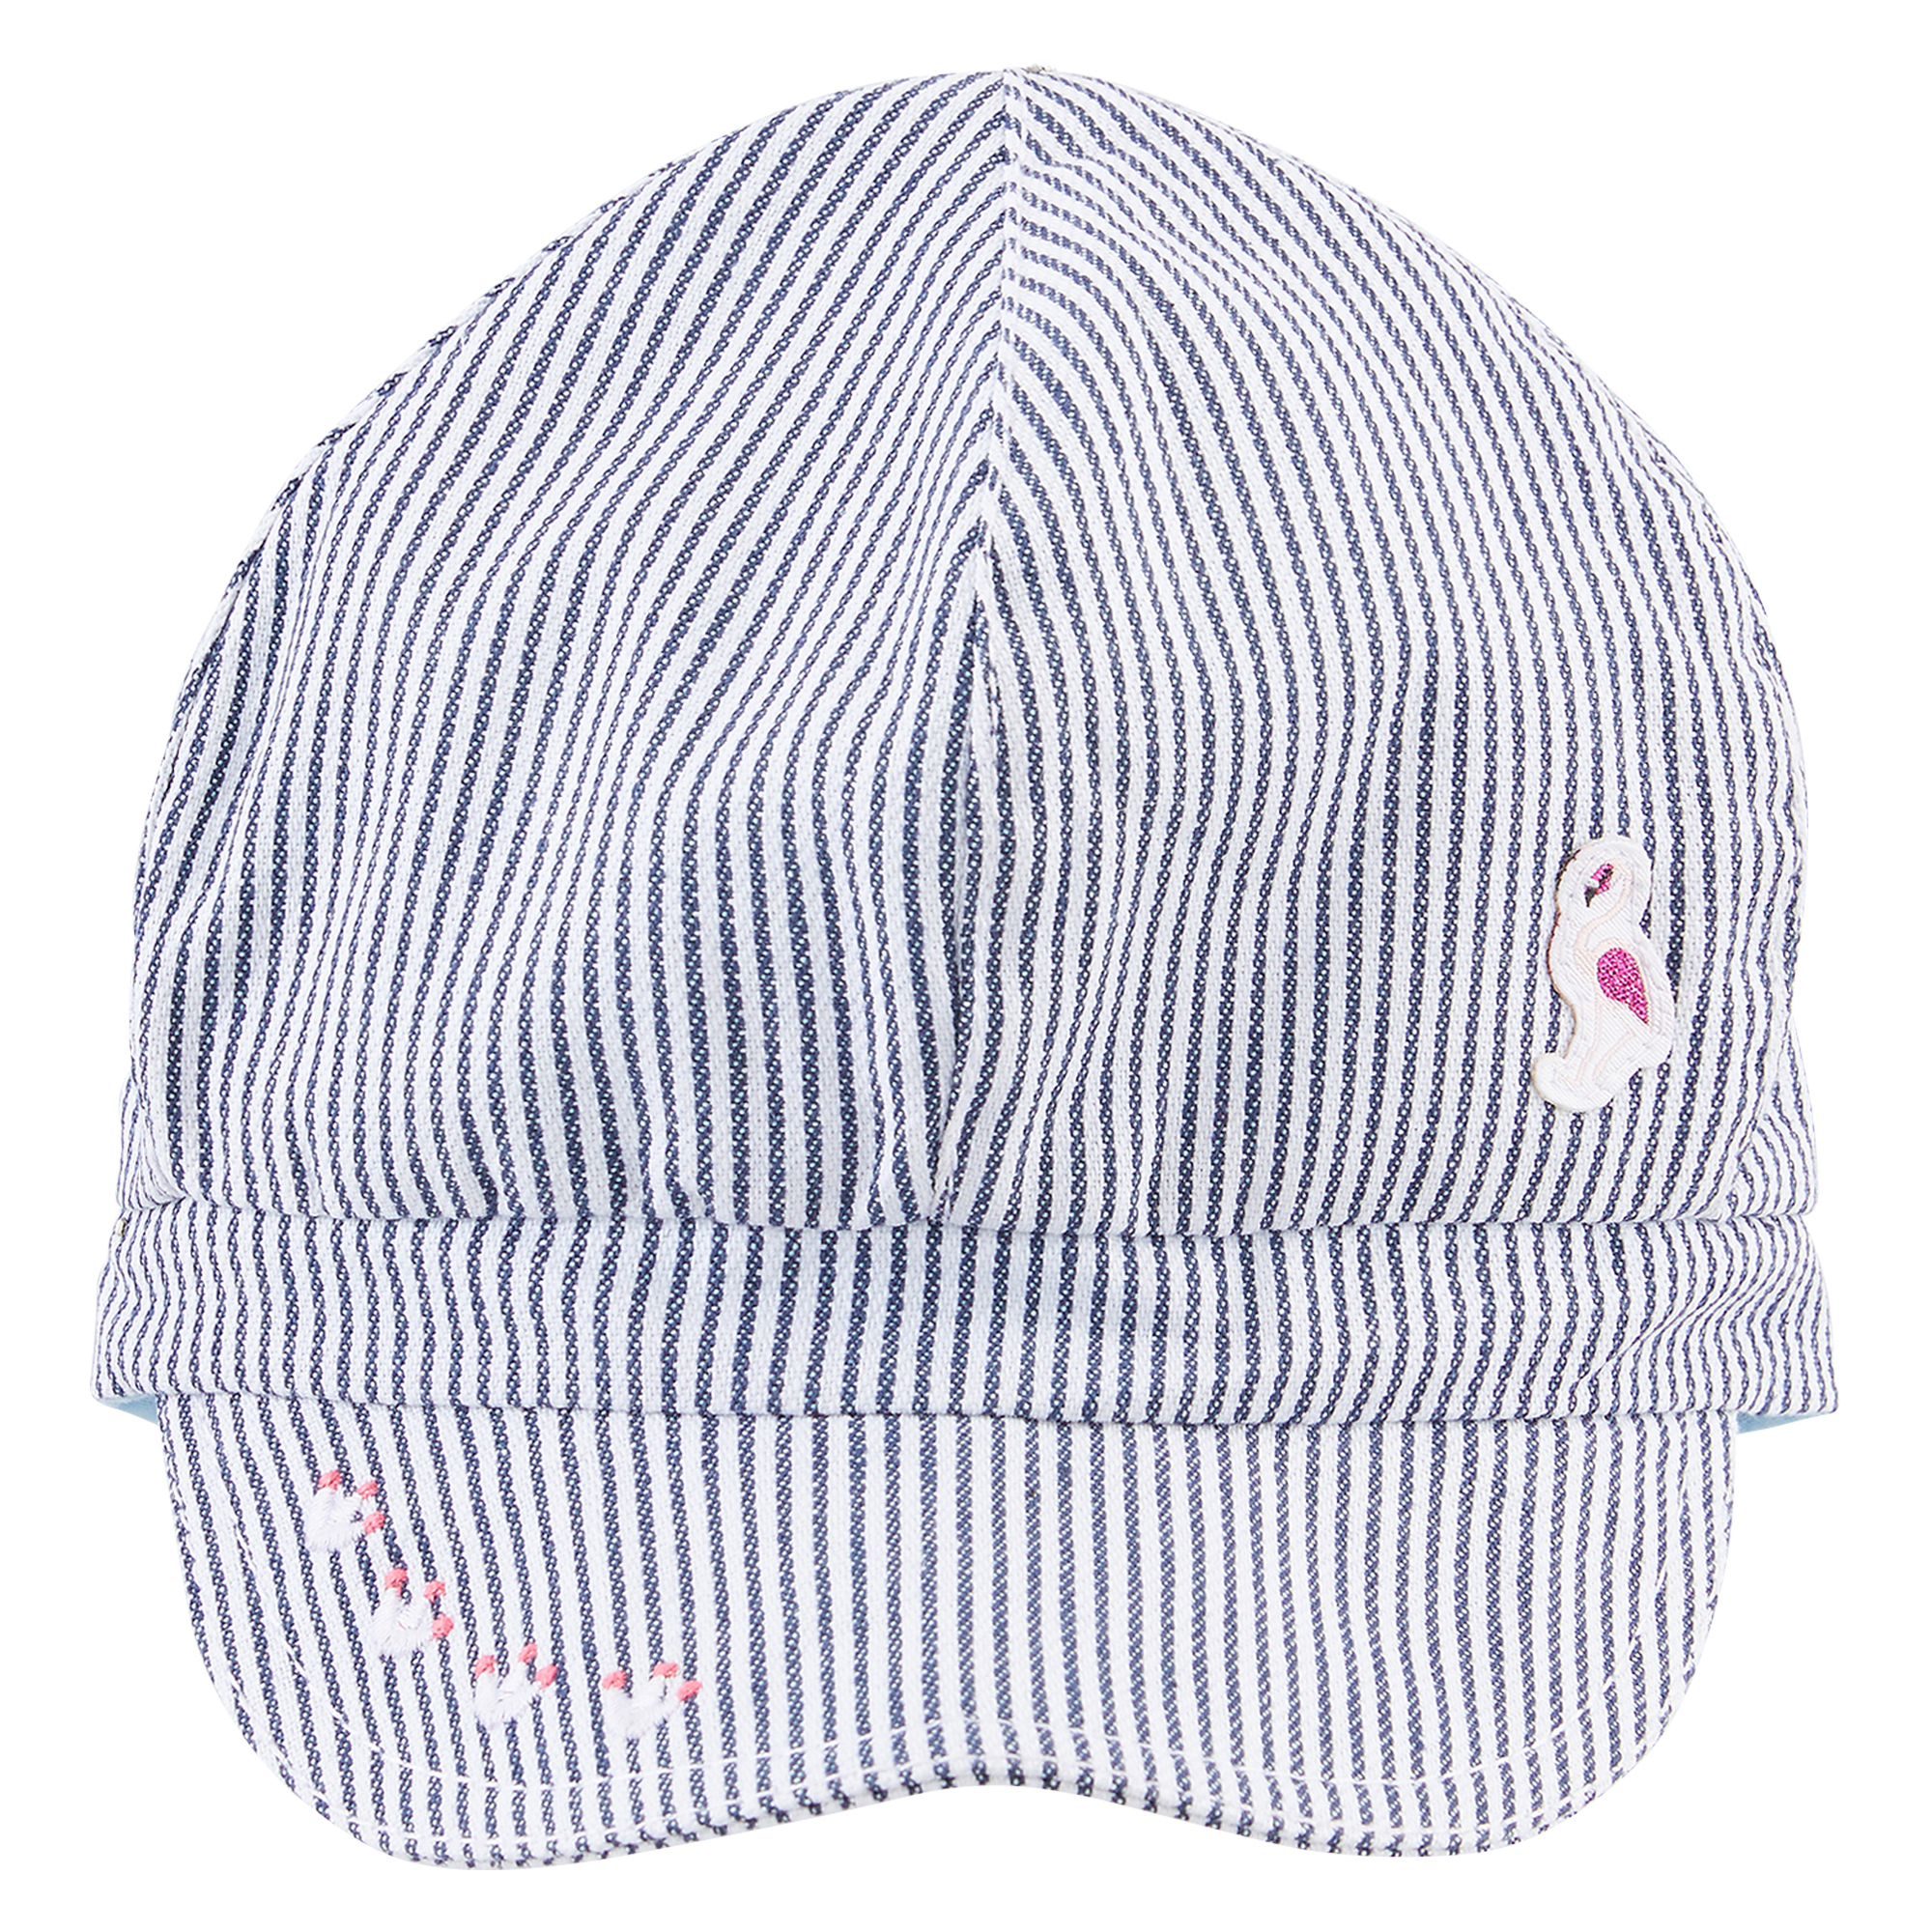 Casquette collection California Dreamin Fille Bleu/Blanc  de Nano & nanette